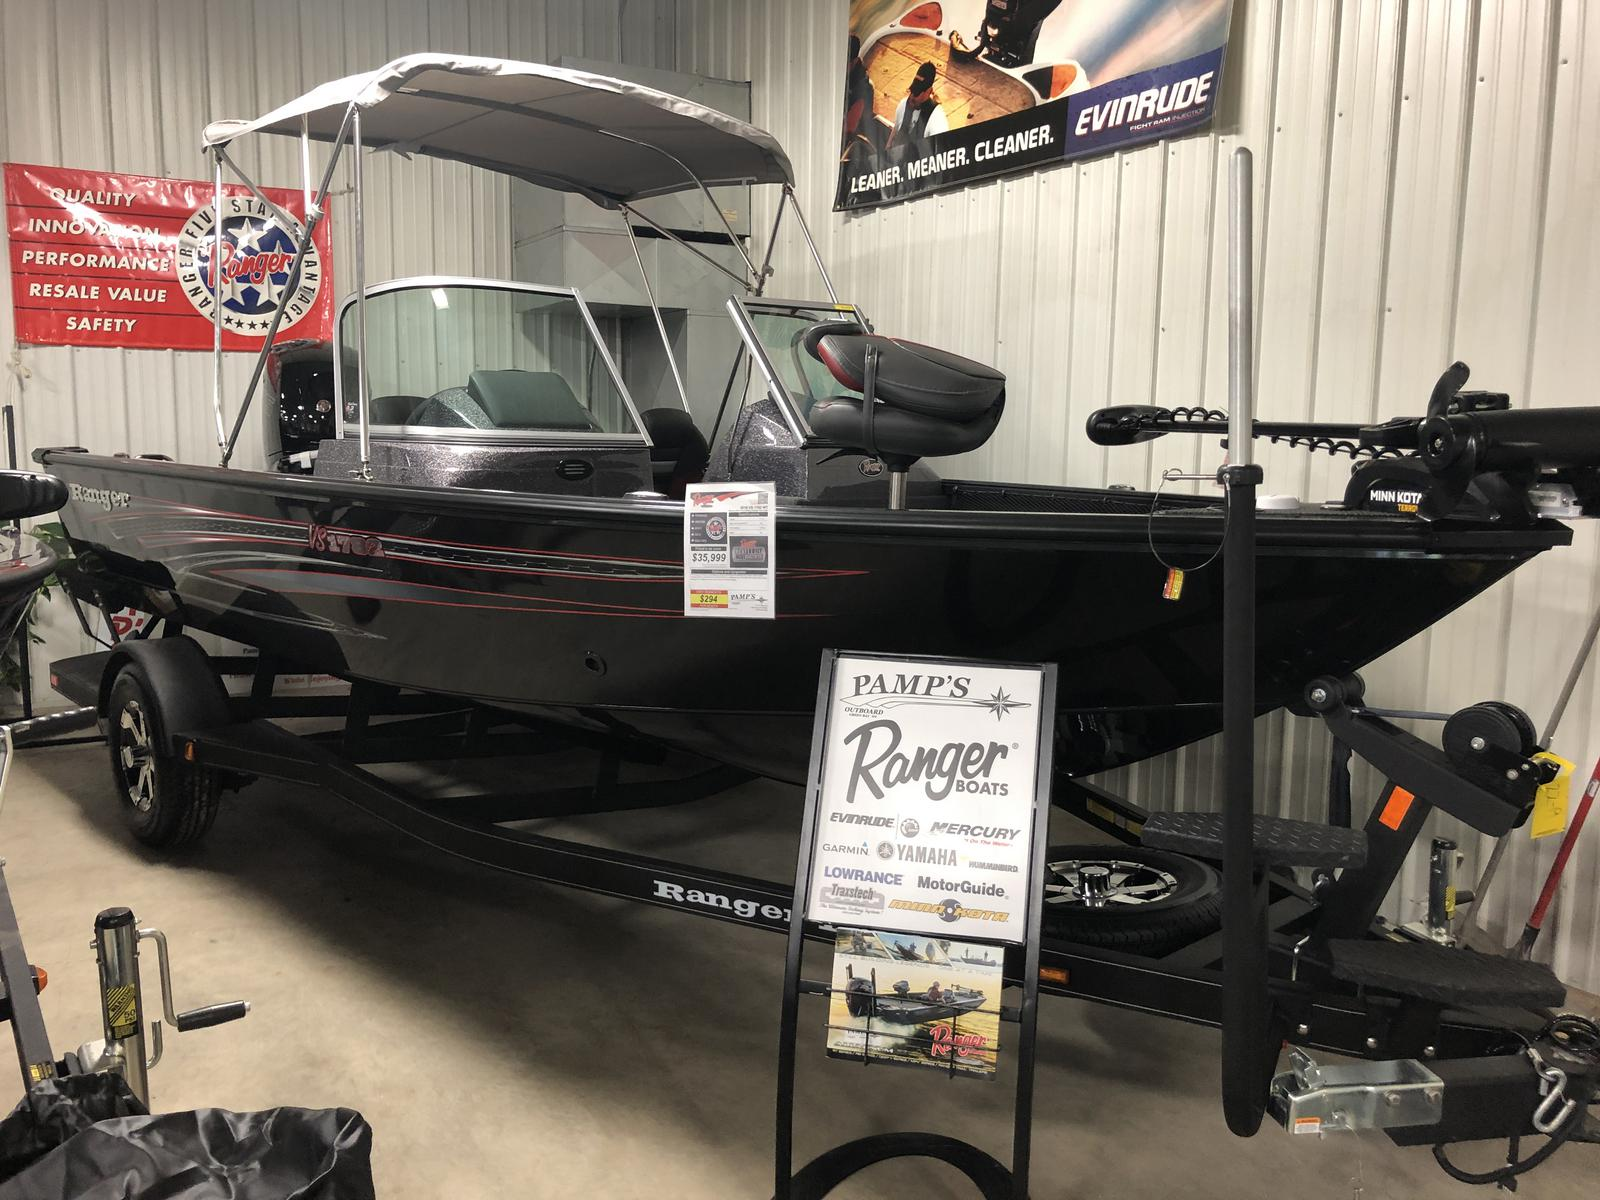 Boats from Ranger Pamp's Outboard Green Bay, WI (920) 494-3358